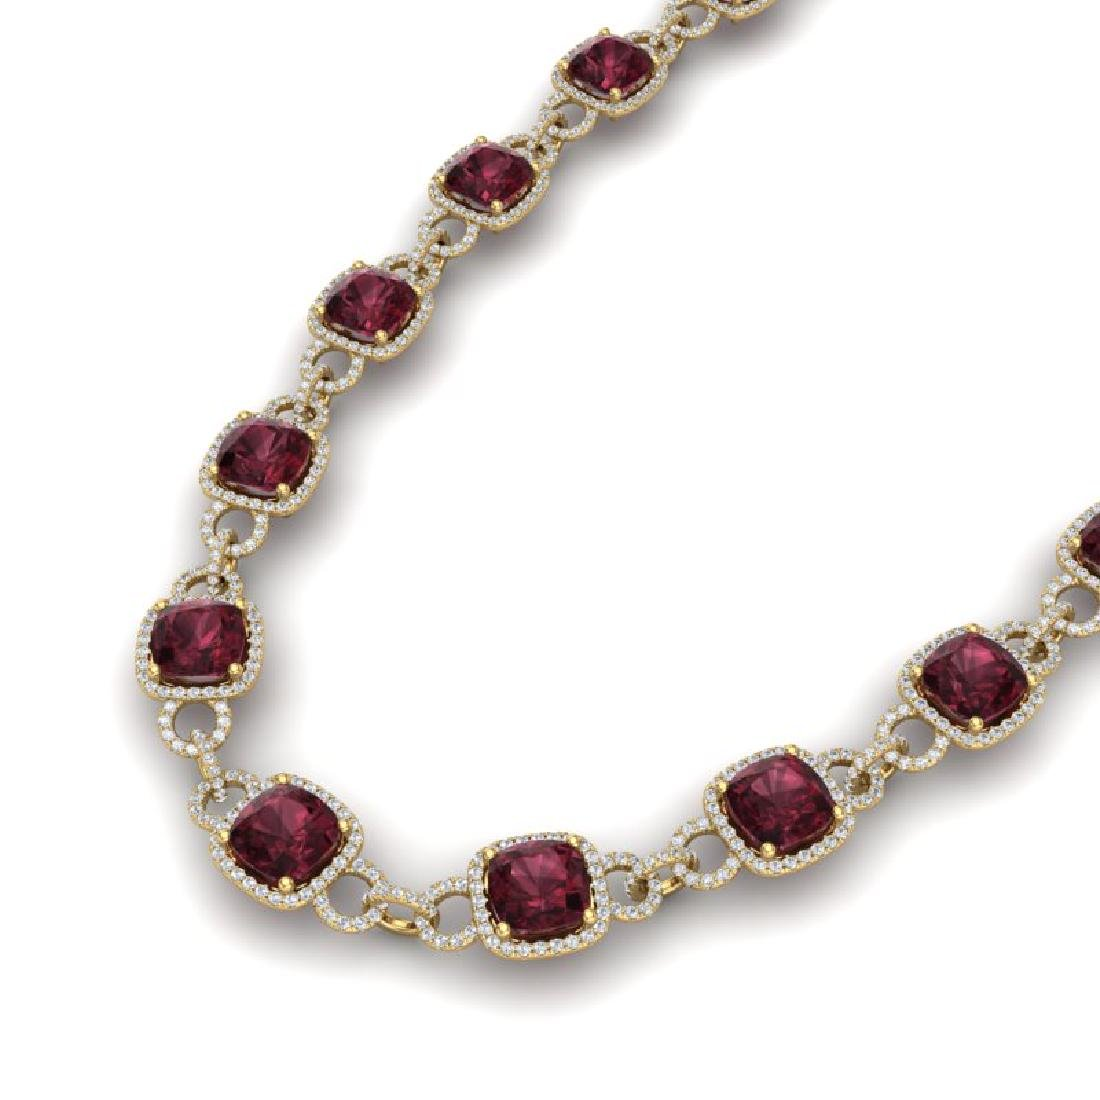 66 CTW Garnet & VS/SI Diamond Necklace 14K Yellow Gold